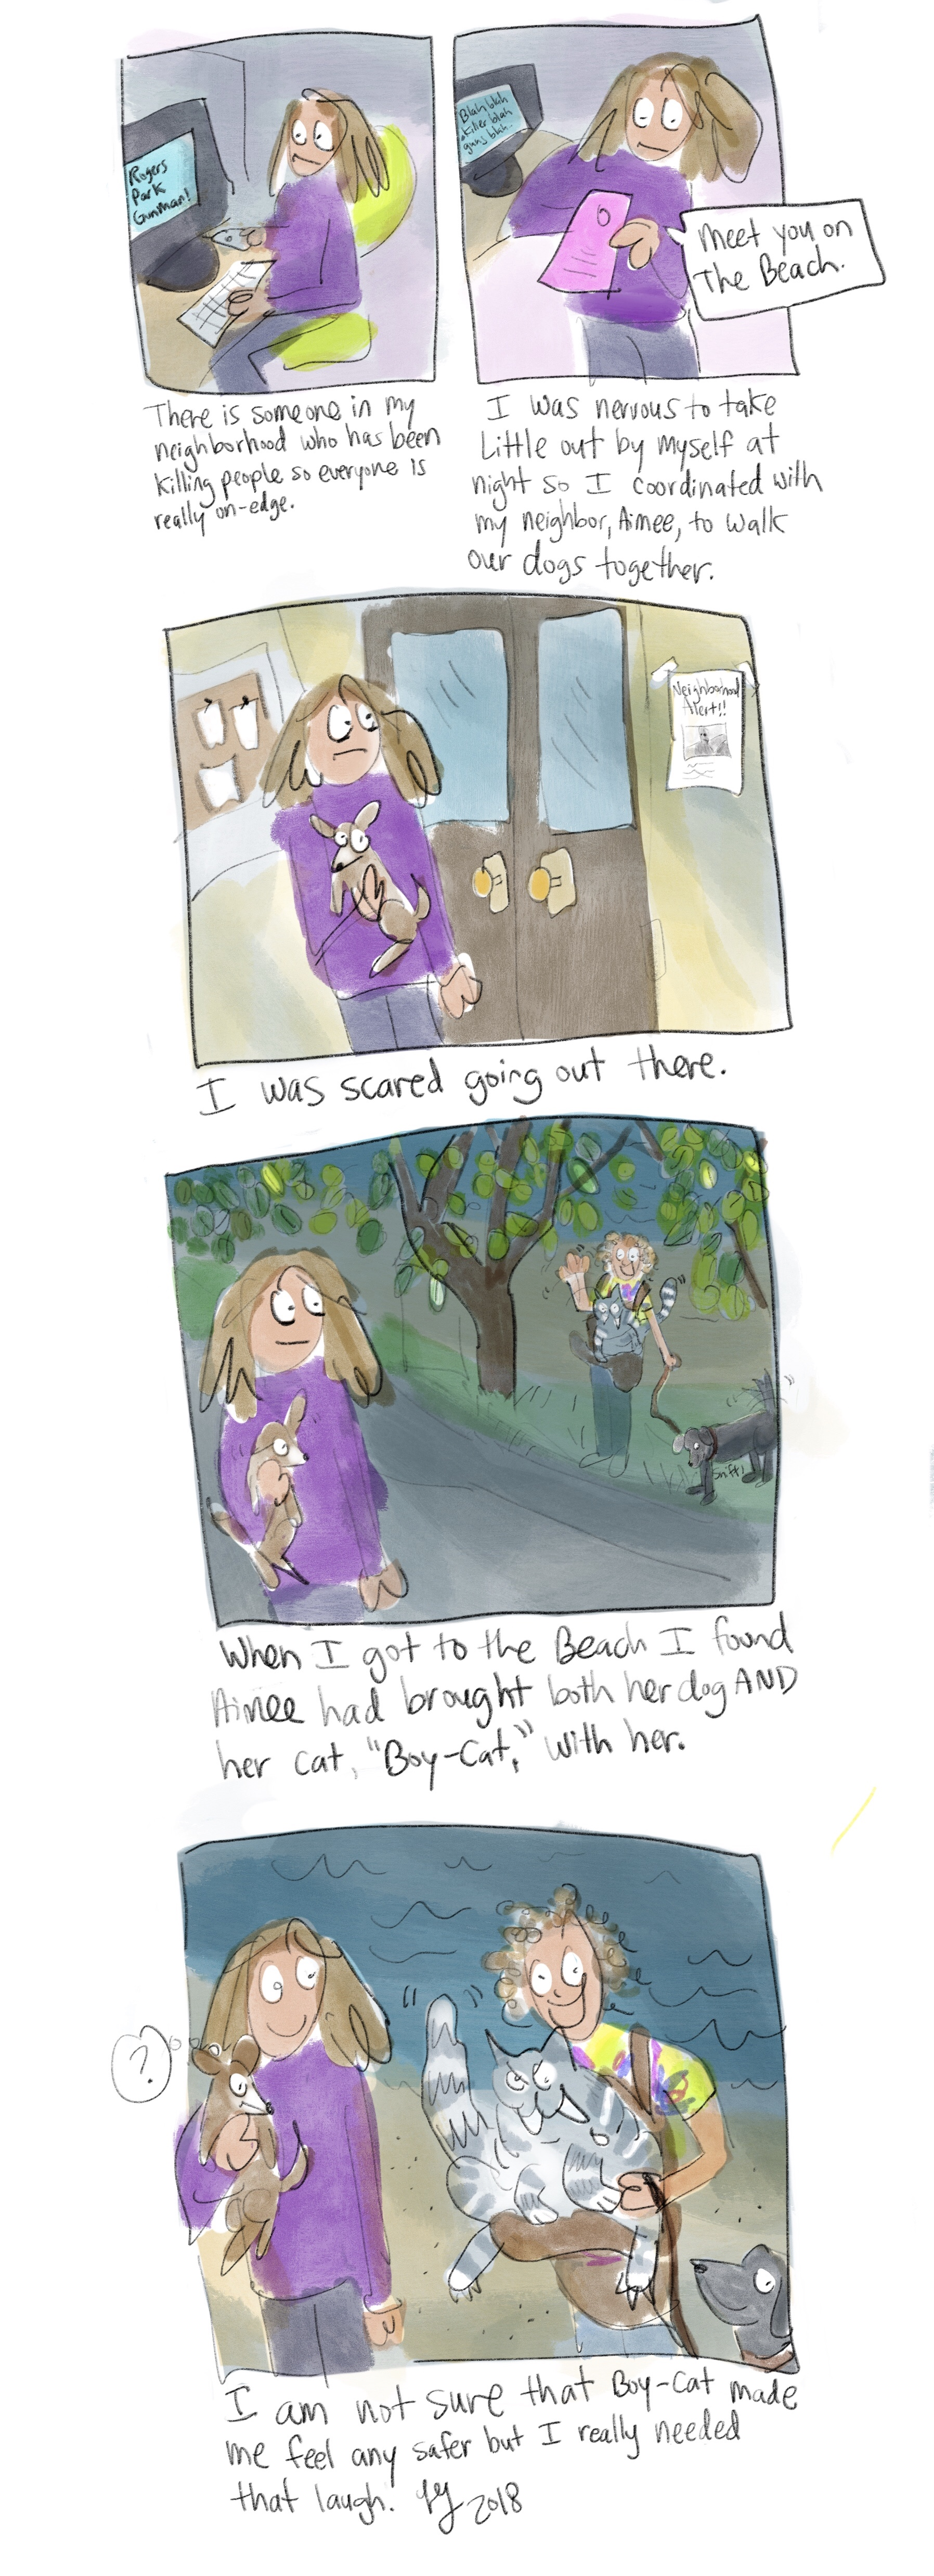 Because of the Rogers Park shooter we've been trying to walk our dogs at the same time. Aimee also brings her cat with. He is a big boy. This is a comic about boy cat.